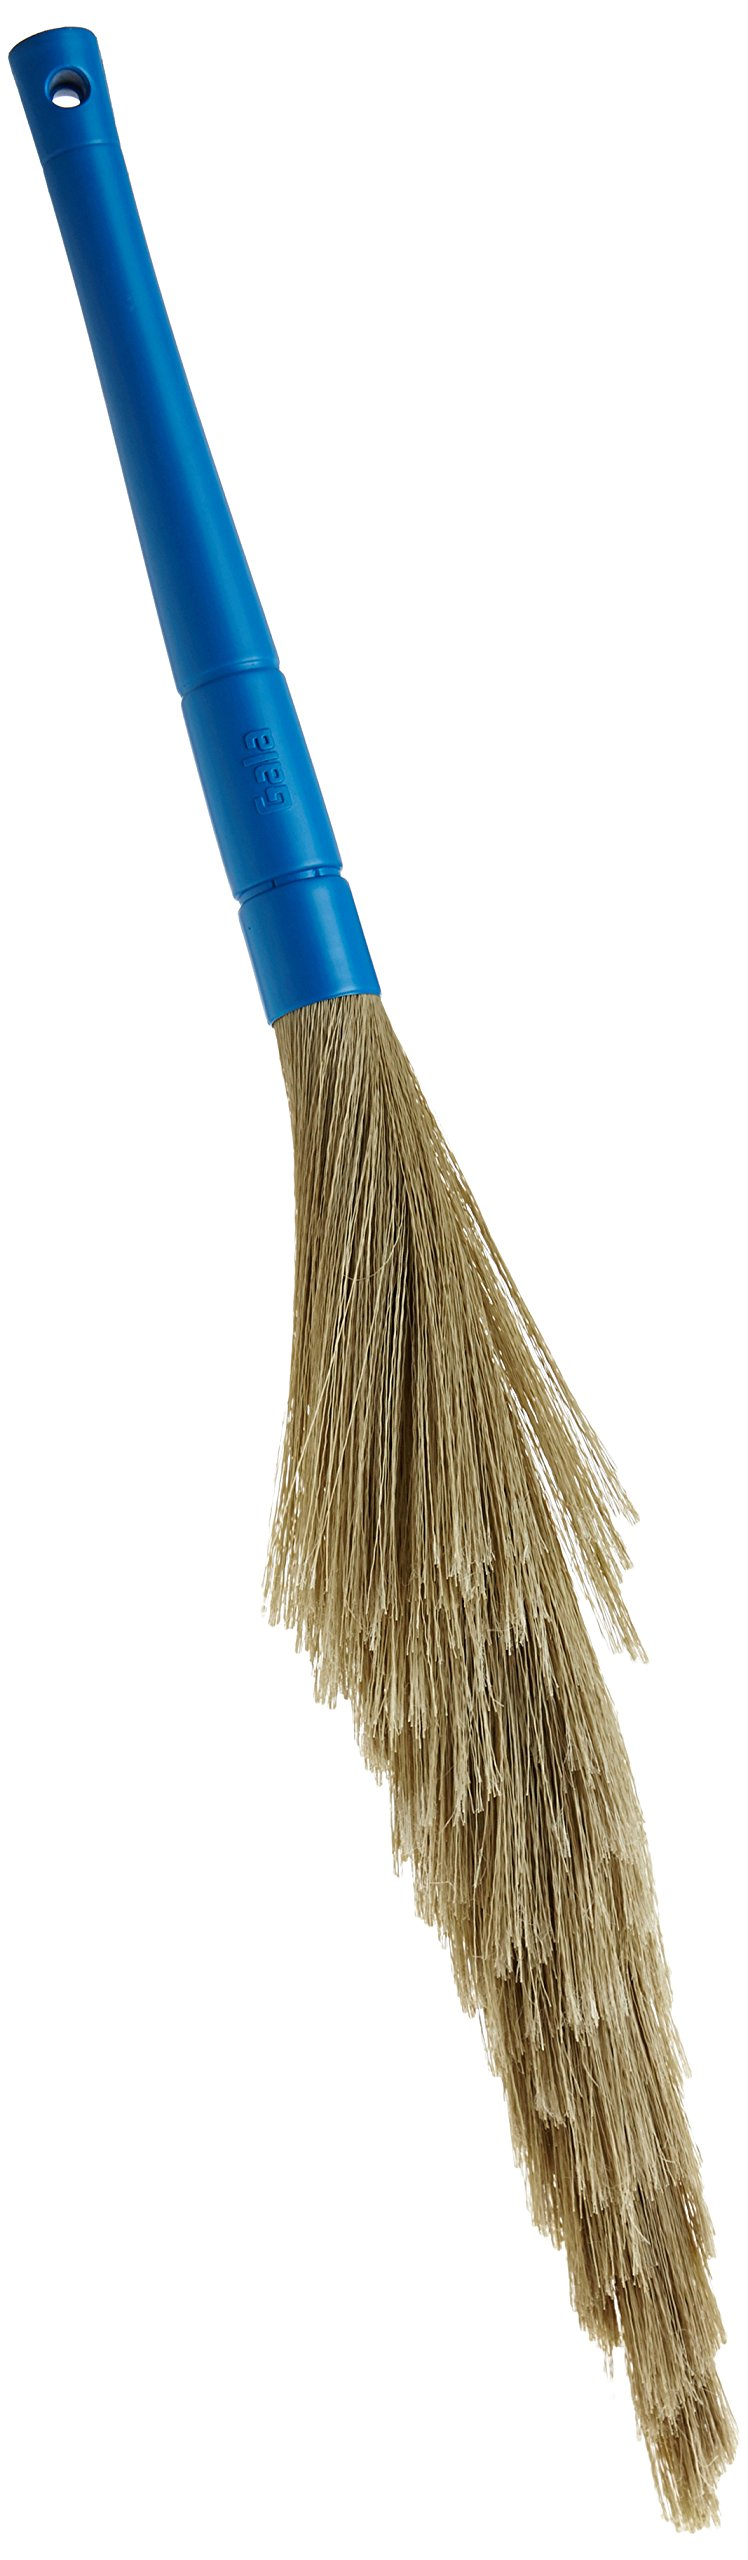 Gala No Dust Floor Broom (Freedom from New Broom Dust- Busan), 2 Count by Gala